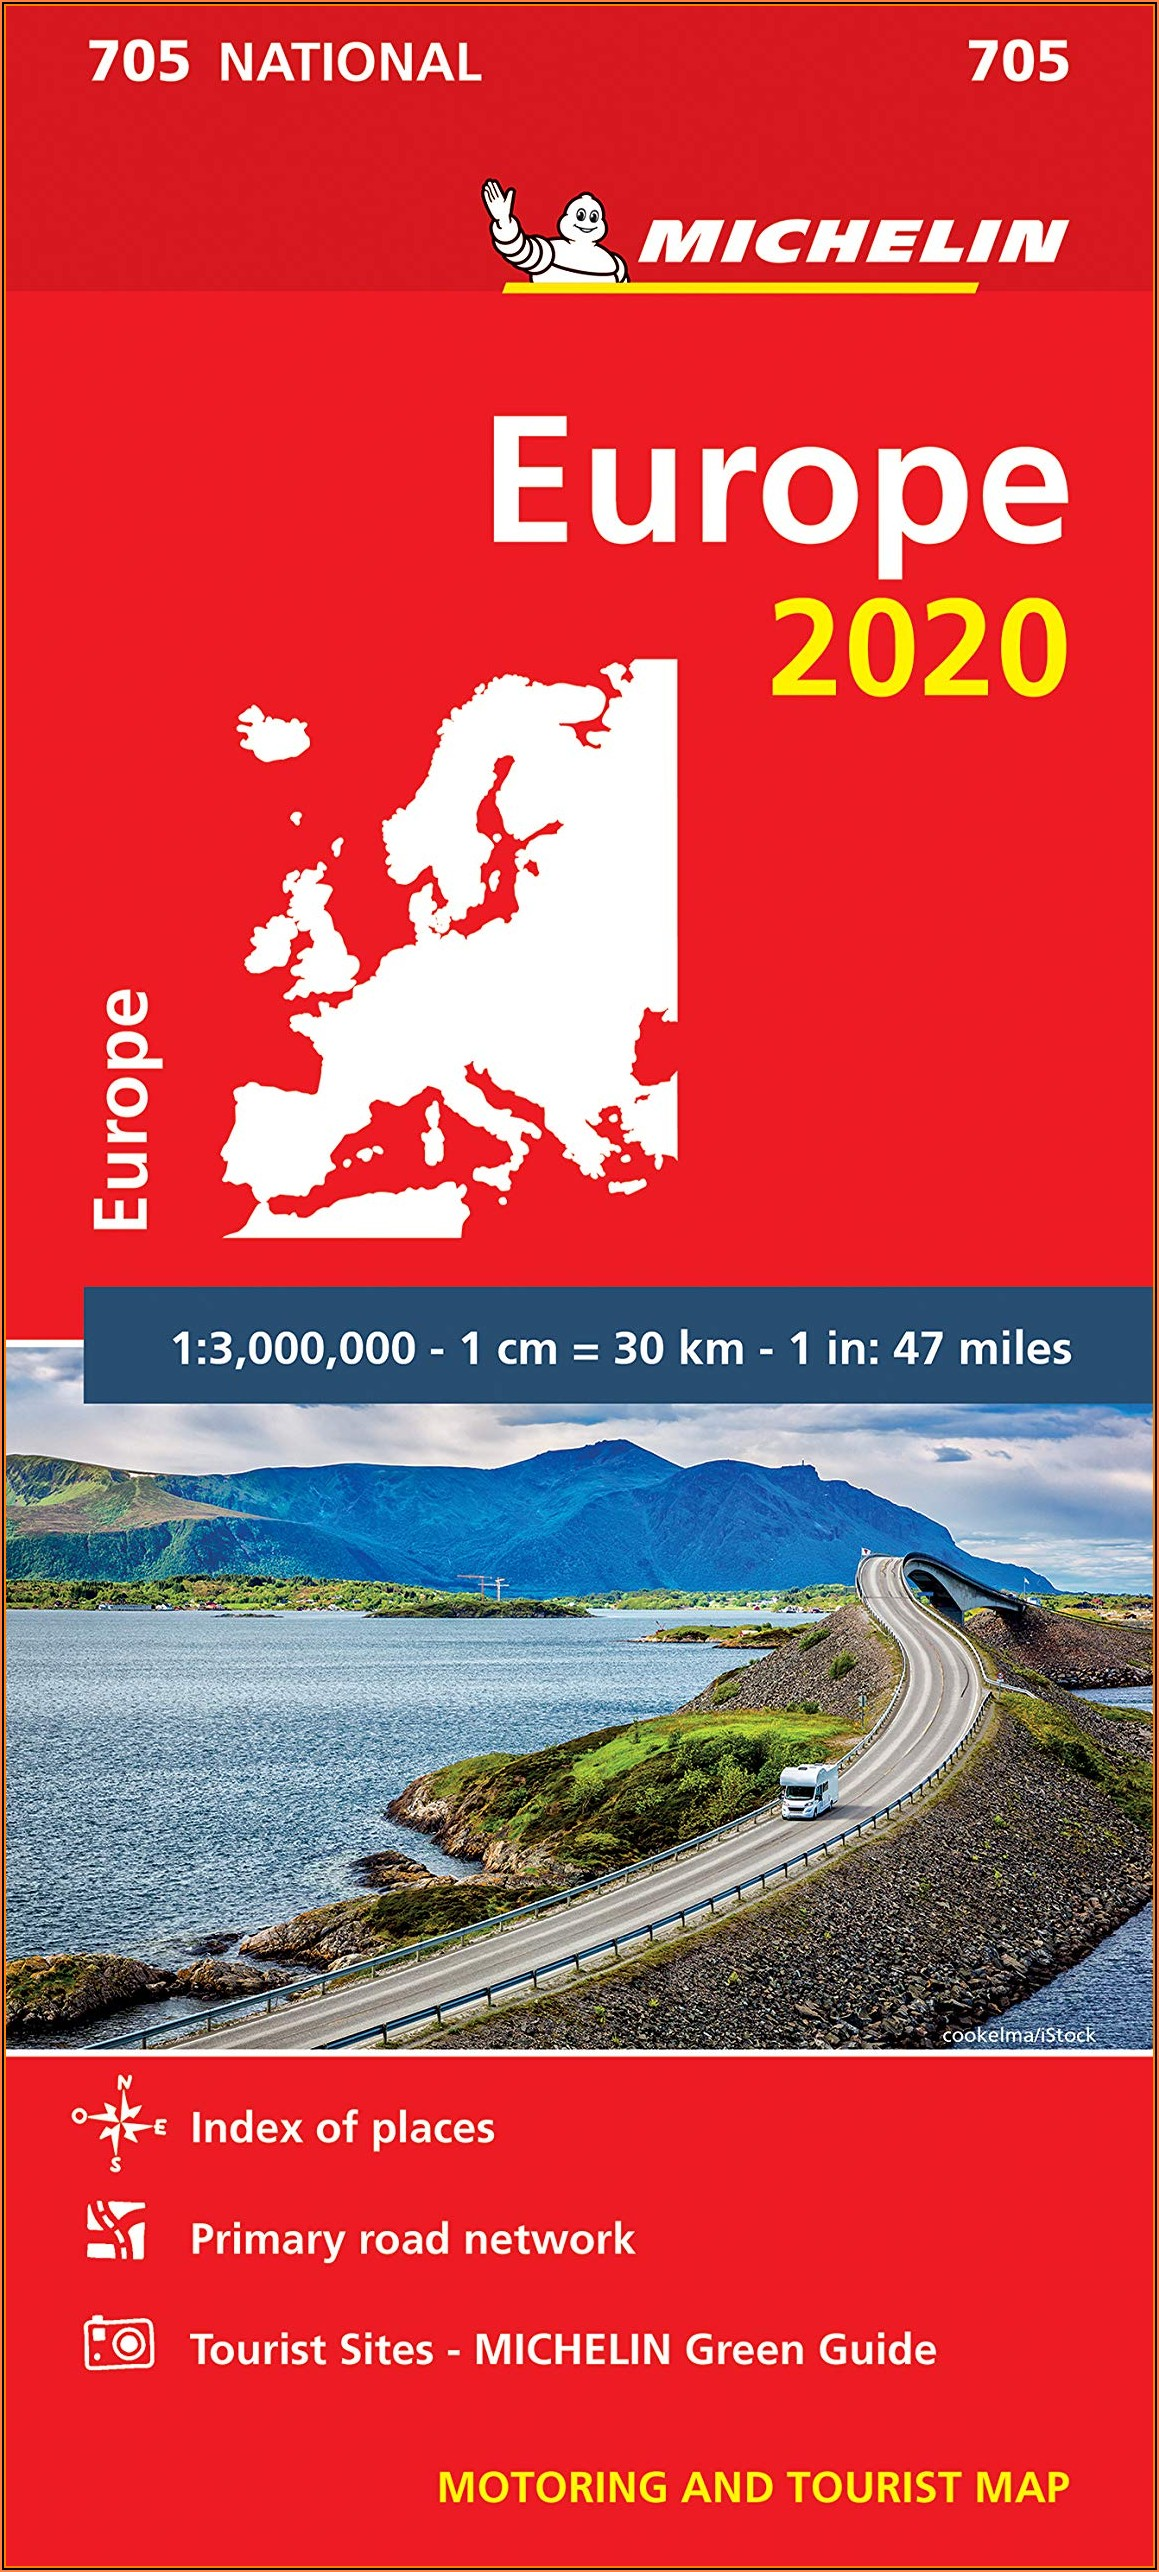 Michelin Europe Map 705